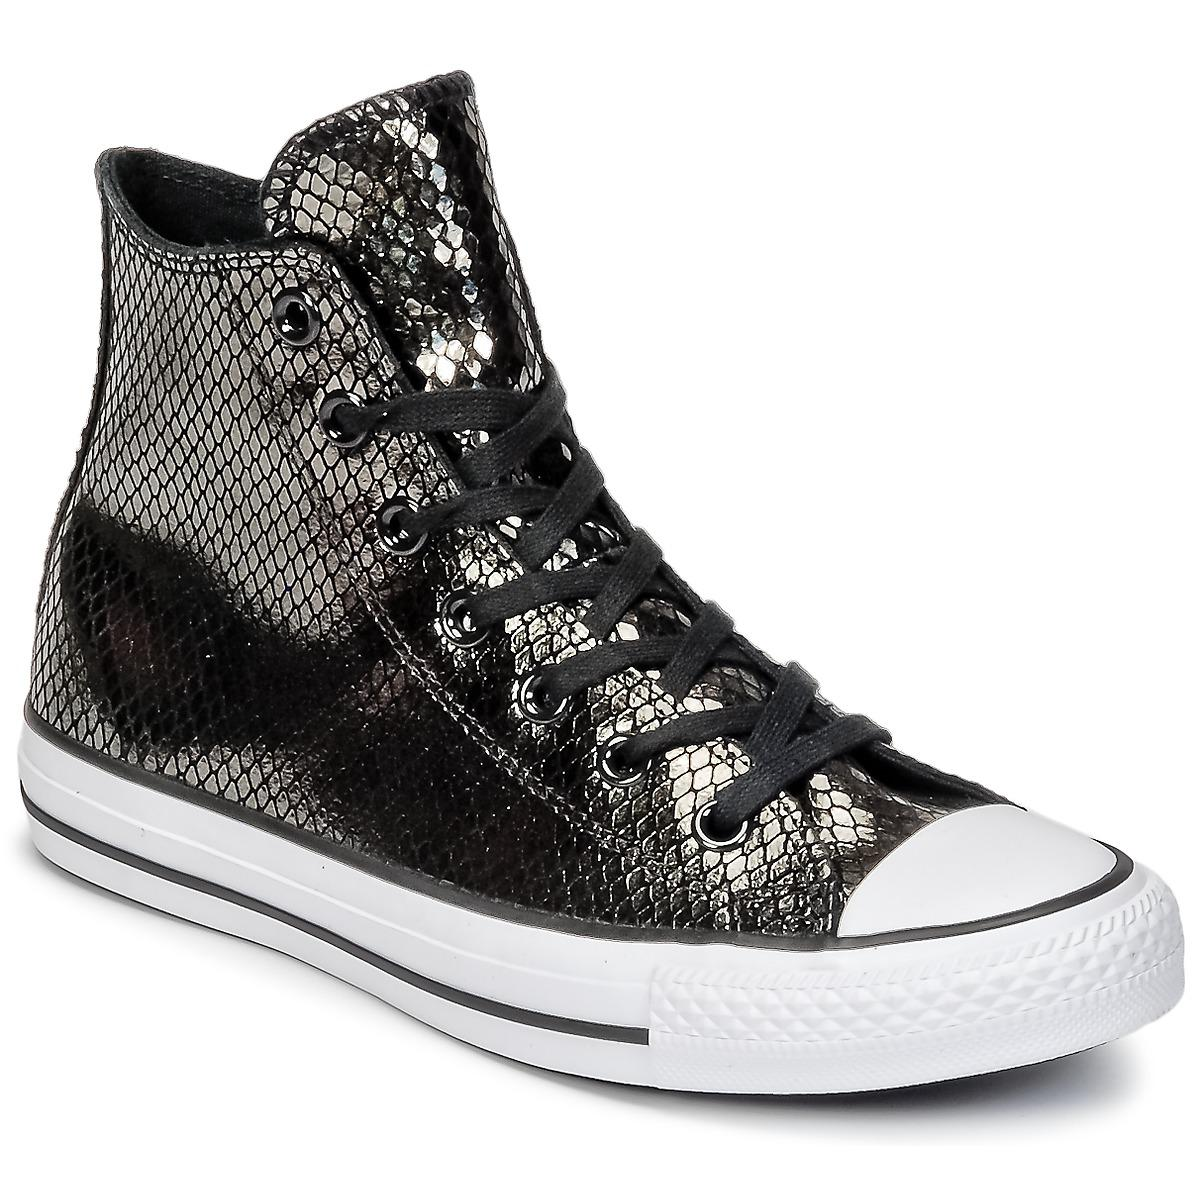 070a993776bd Converse Chuck Taylor All Star Metallic Snake Leather Hi Shoes (high ...